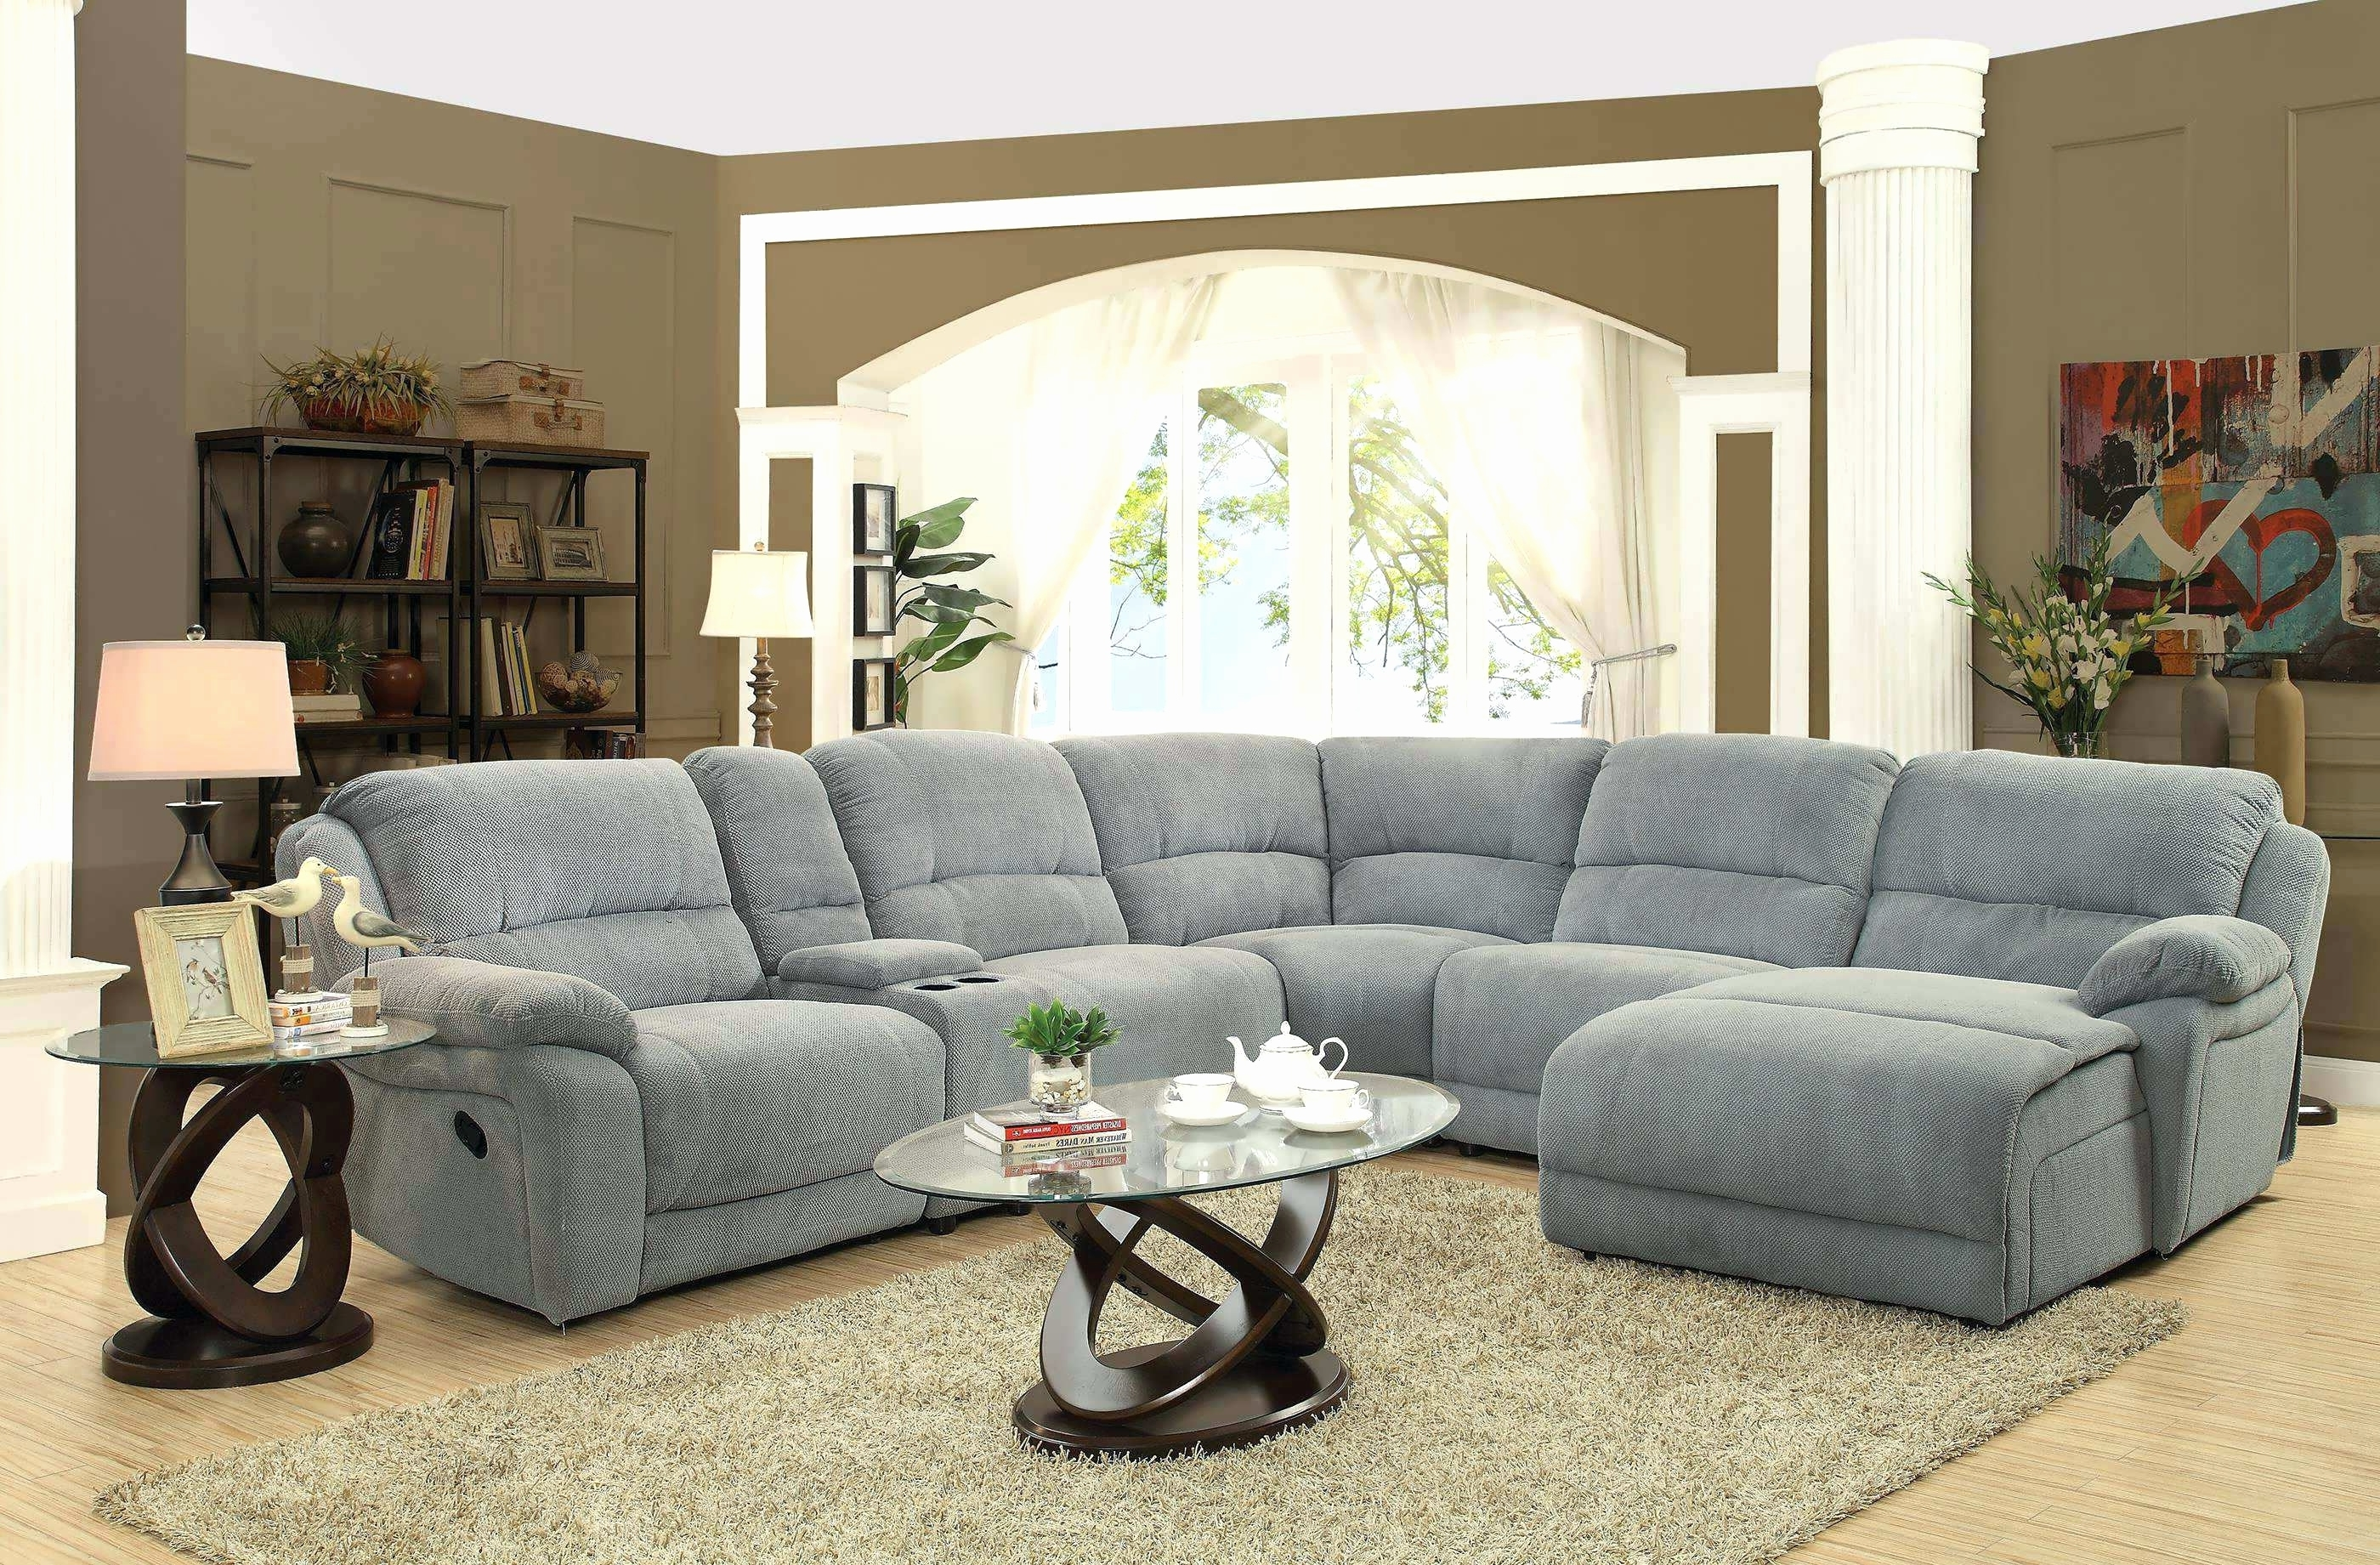 how best couches couch photos perfect sofas fit elegant shaped sectional find u small to sofa the of